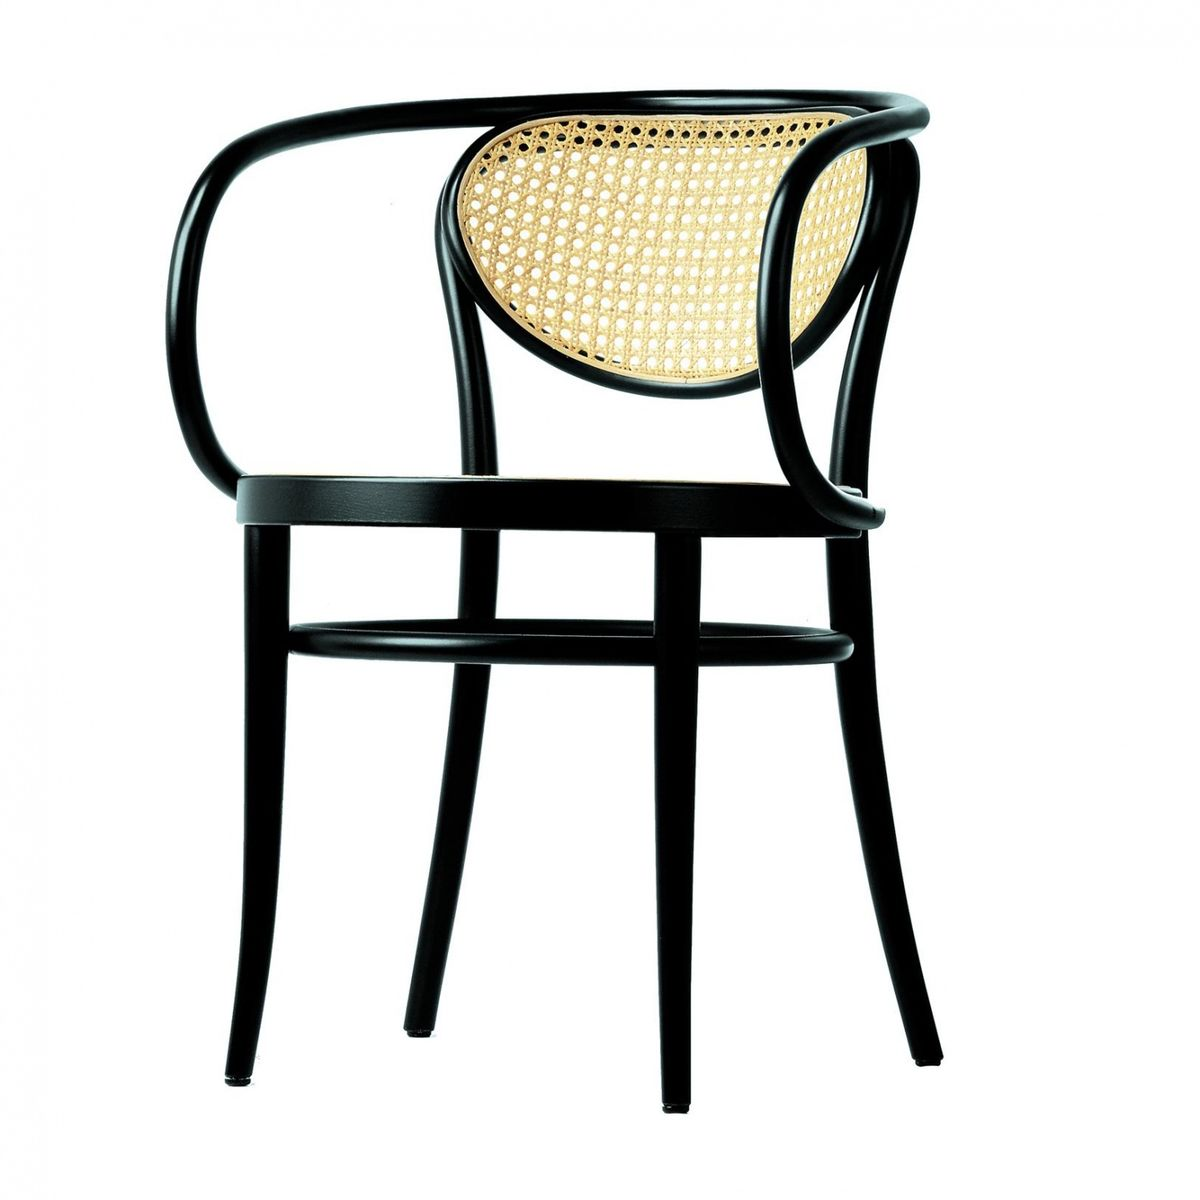 Thonet   Thonet 210 R Armchair   Black/cane With Mesh Reinforcement/on Seat